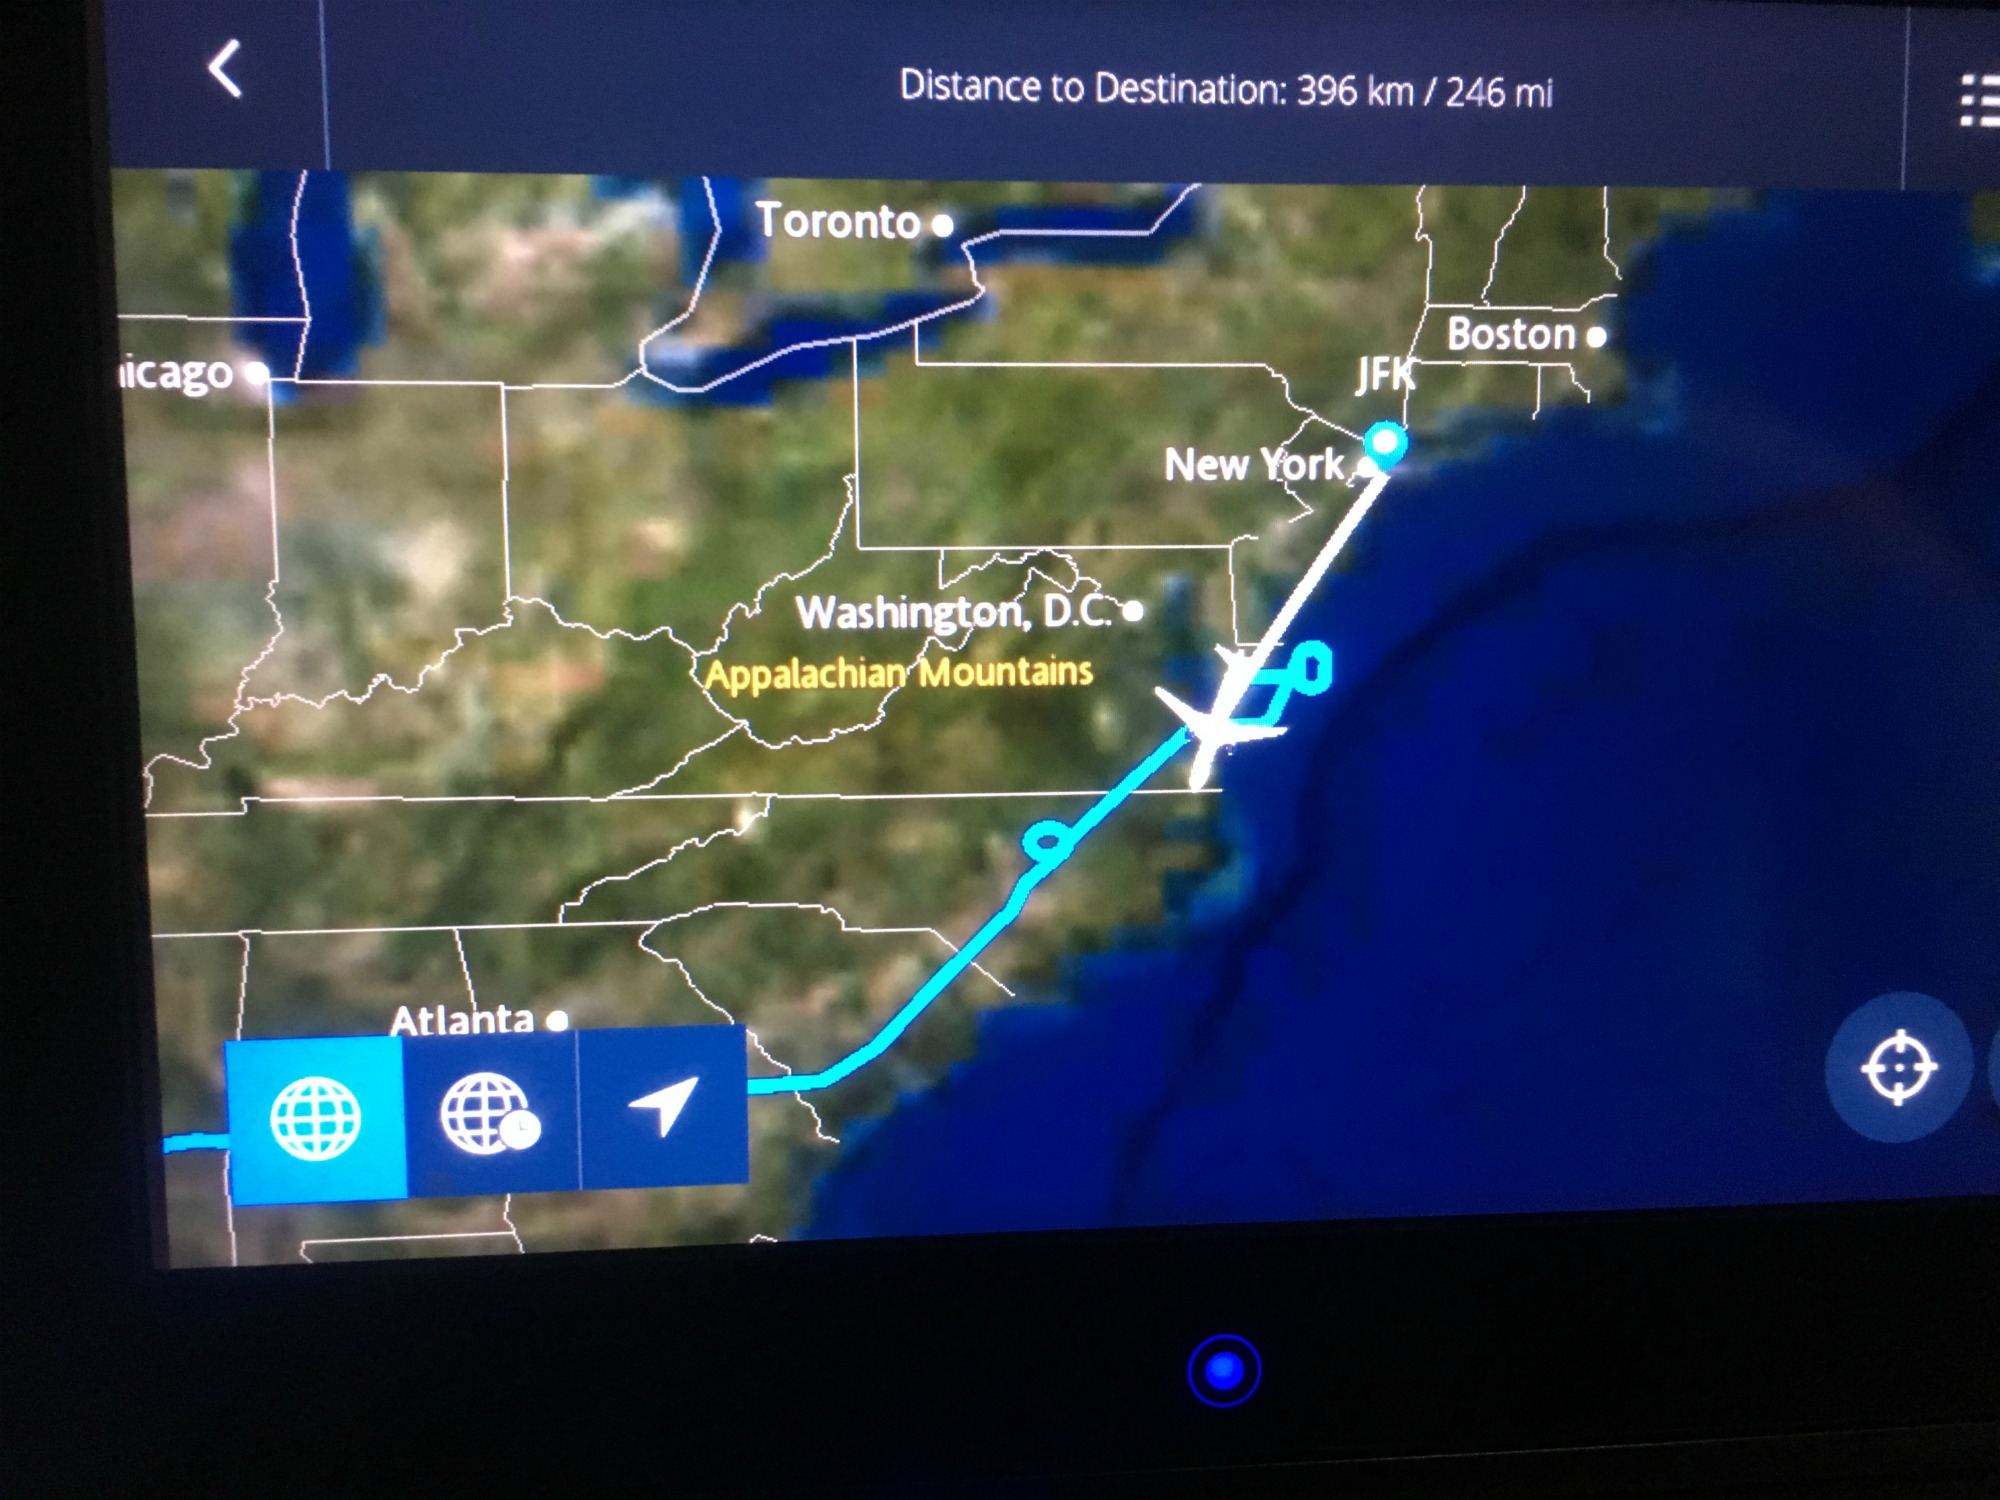 Hmmm, things aren't looking good. Our pilot's not drunk. He's been flying in circles for a few hours here and there, and now we're being diverted down to Norfolk, VA to gas up. Bad weather in New York. Very bad weather. Looks like we won't make our connection OR the two later flights out of JFK.